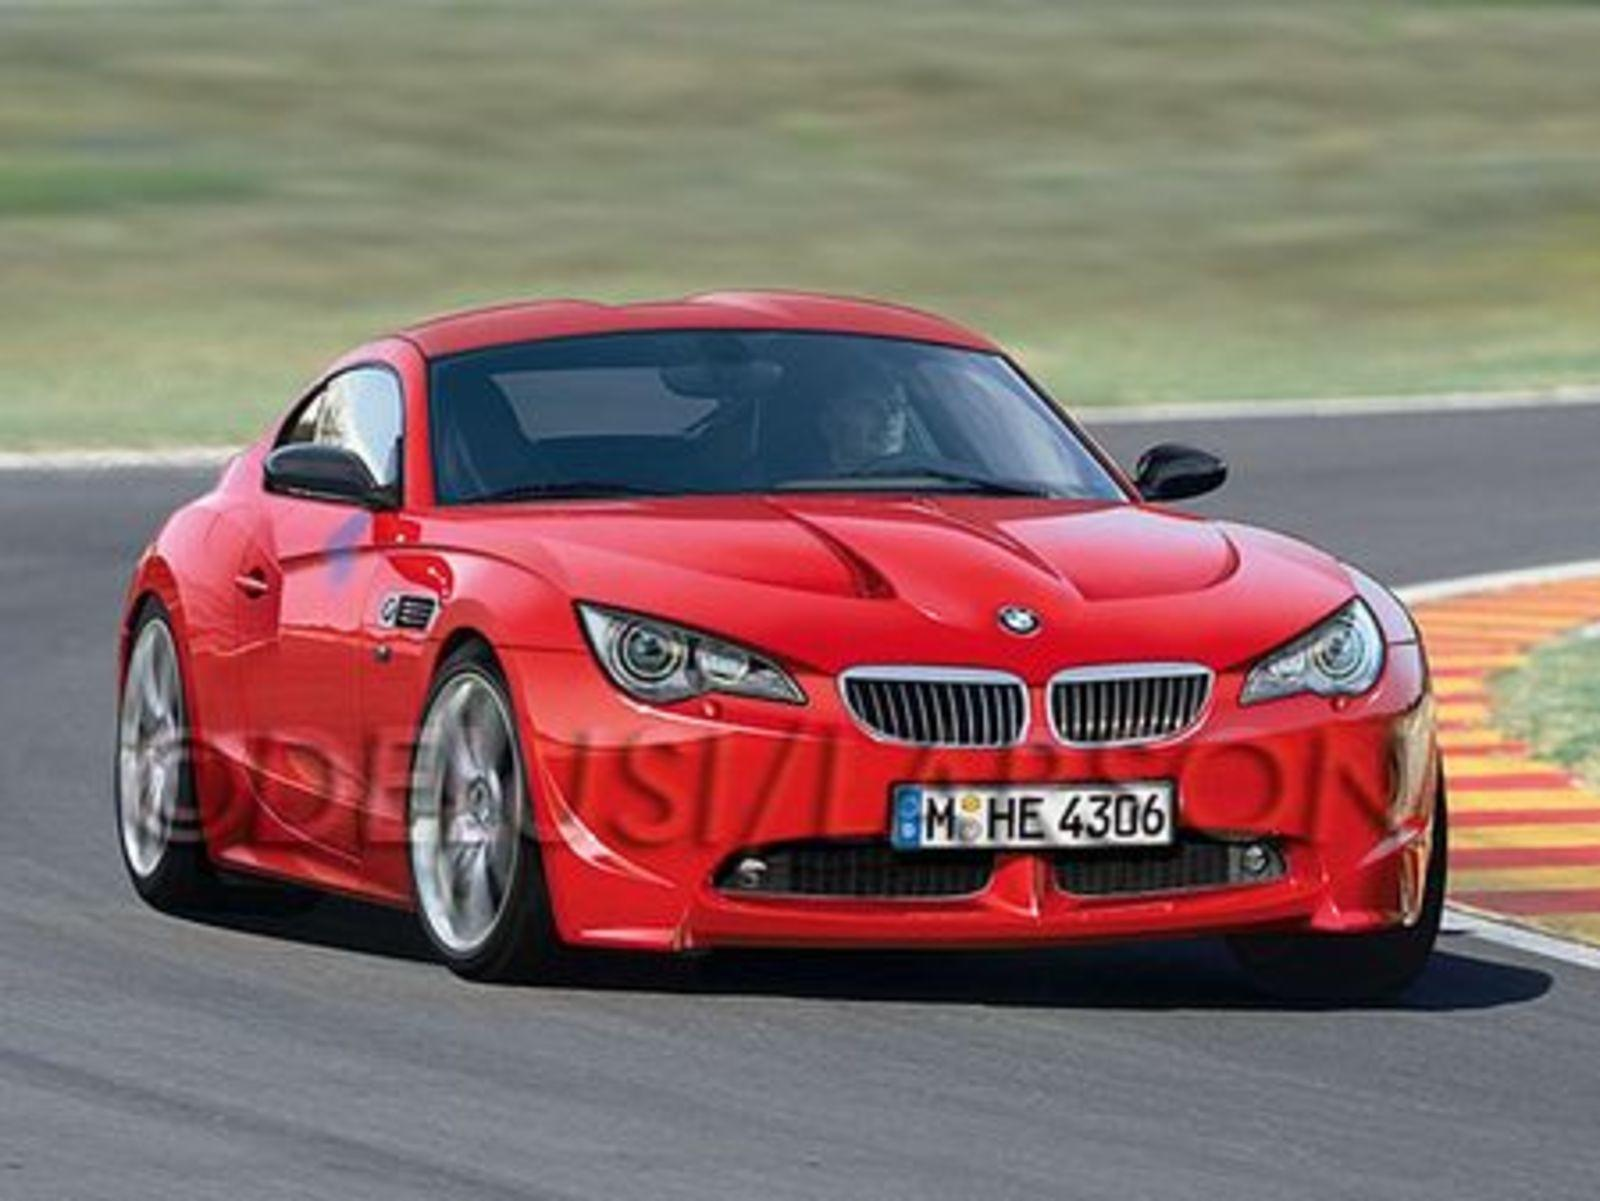 BMW M10 To Be Unveiled In 2010